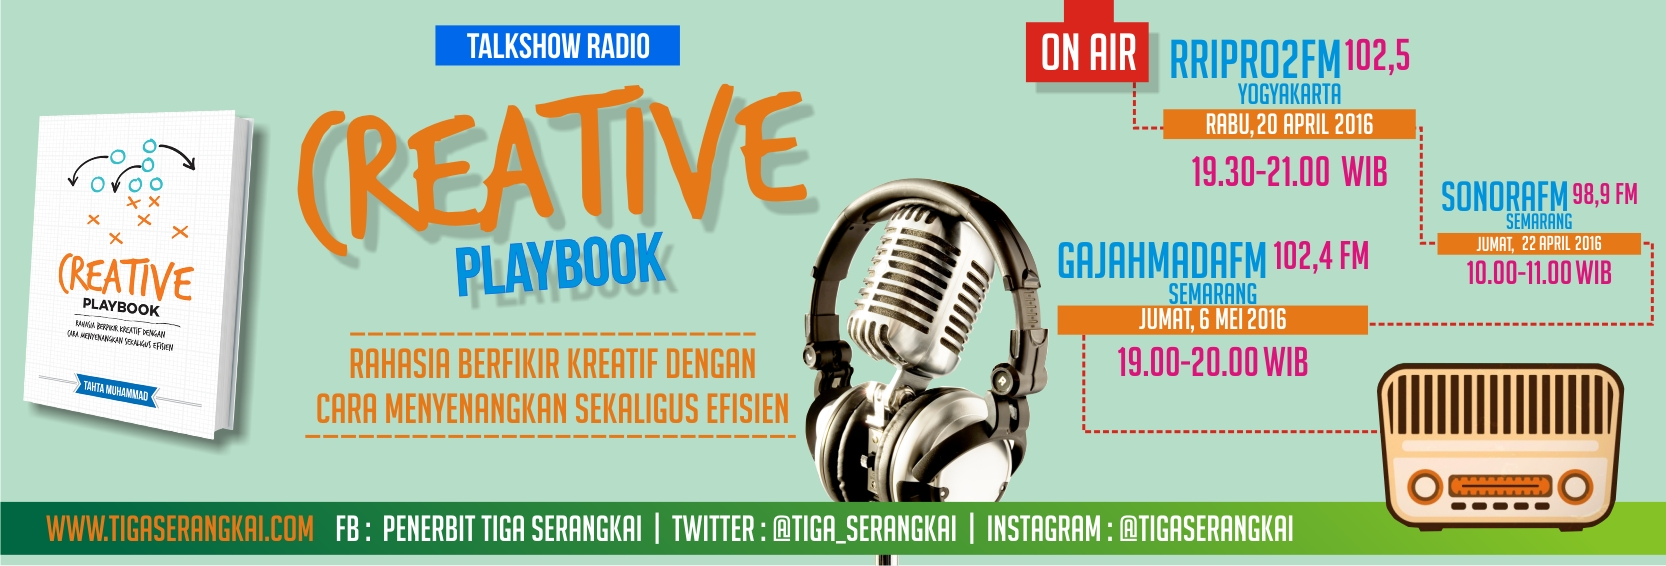 Creative Playbook Banner Radio